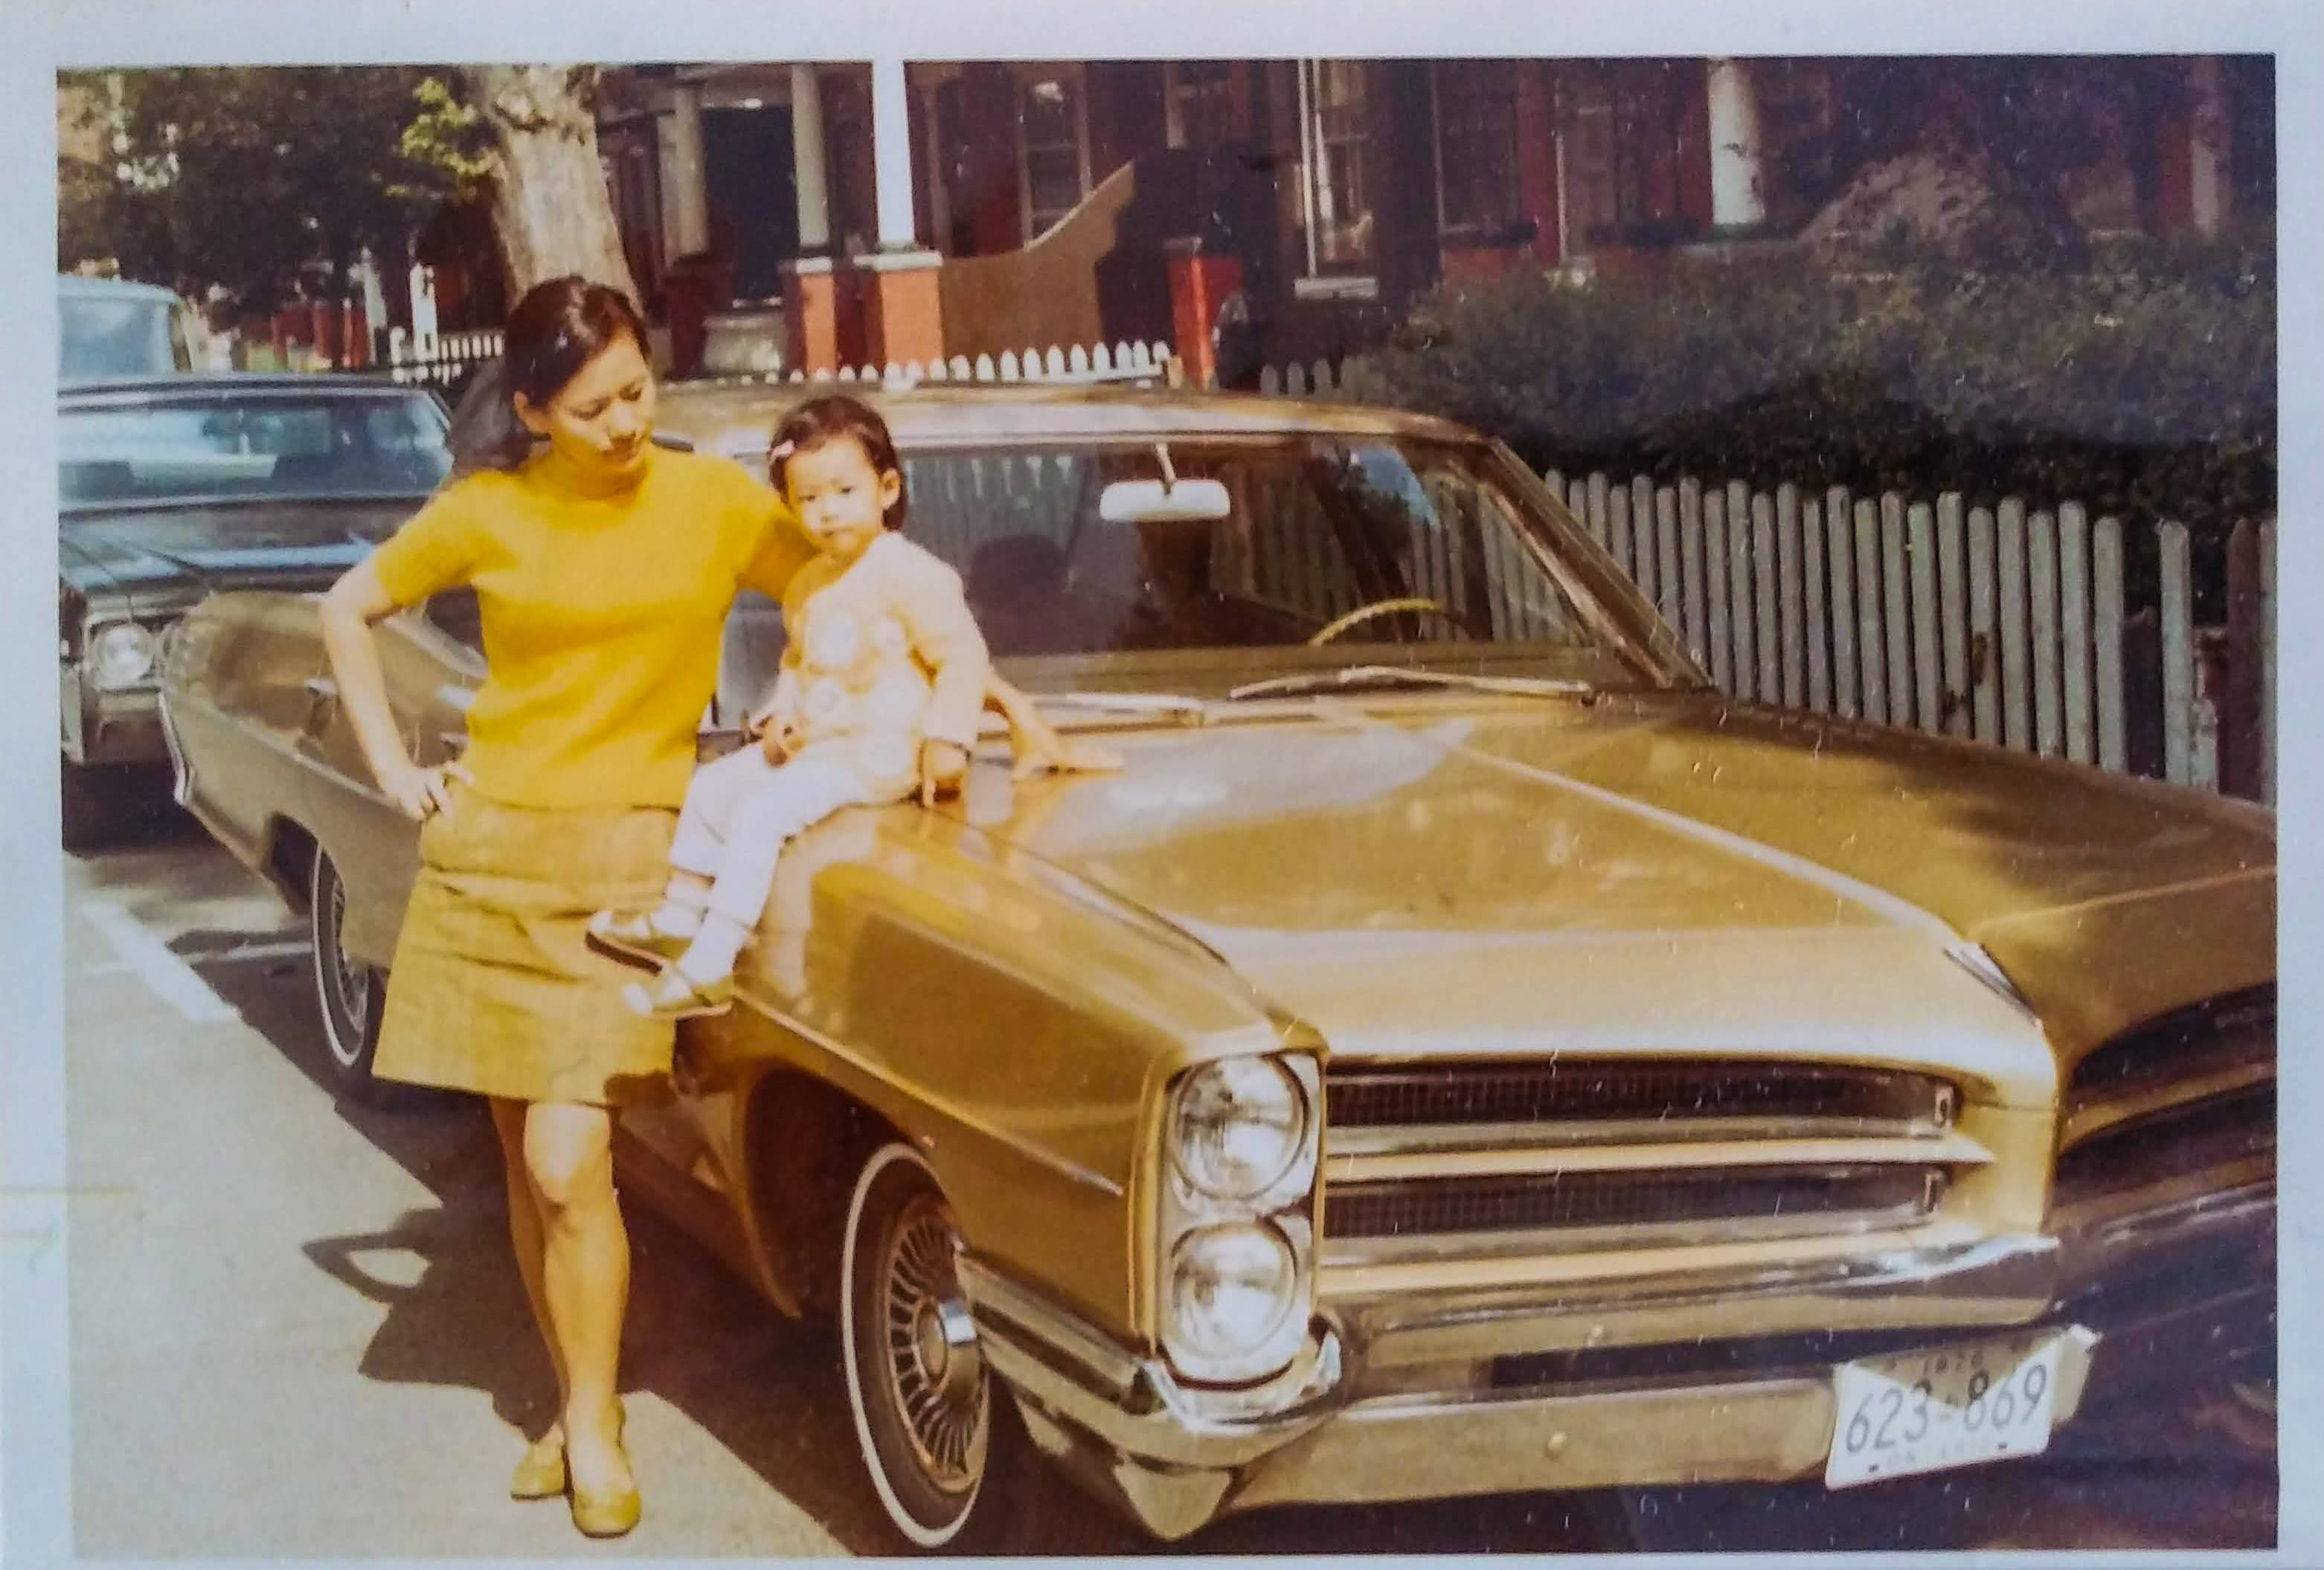 A woman (left) stands next to a brown Pontiac car. She looks down at her baby (the writer), who is perched on the trunk of the car.